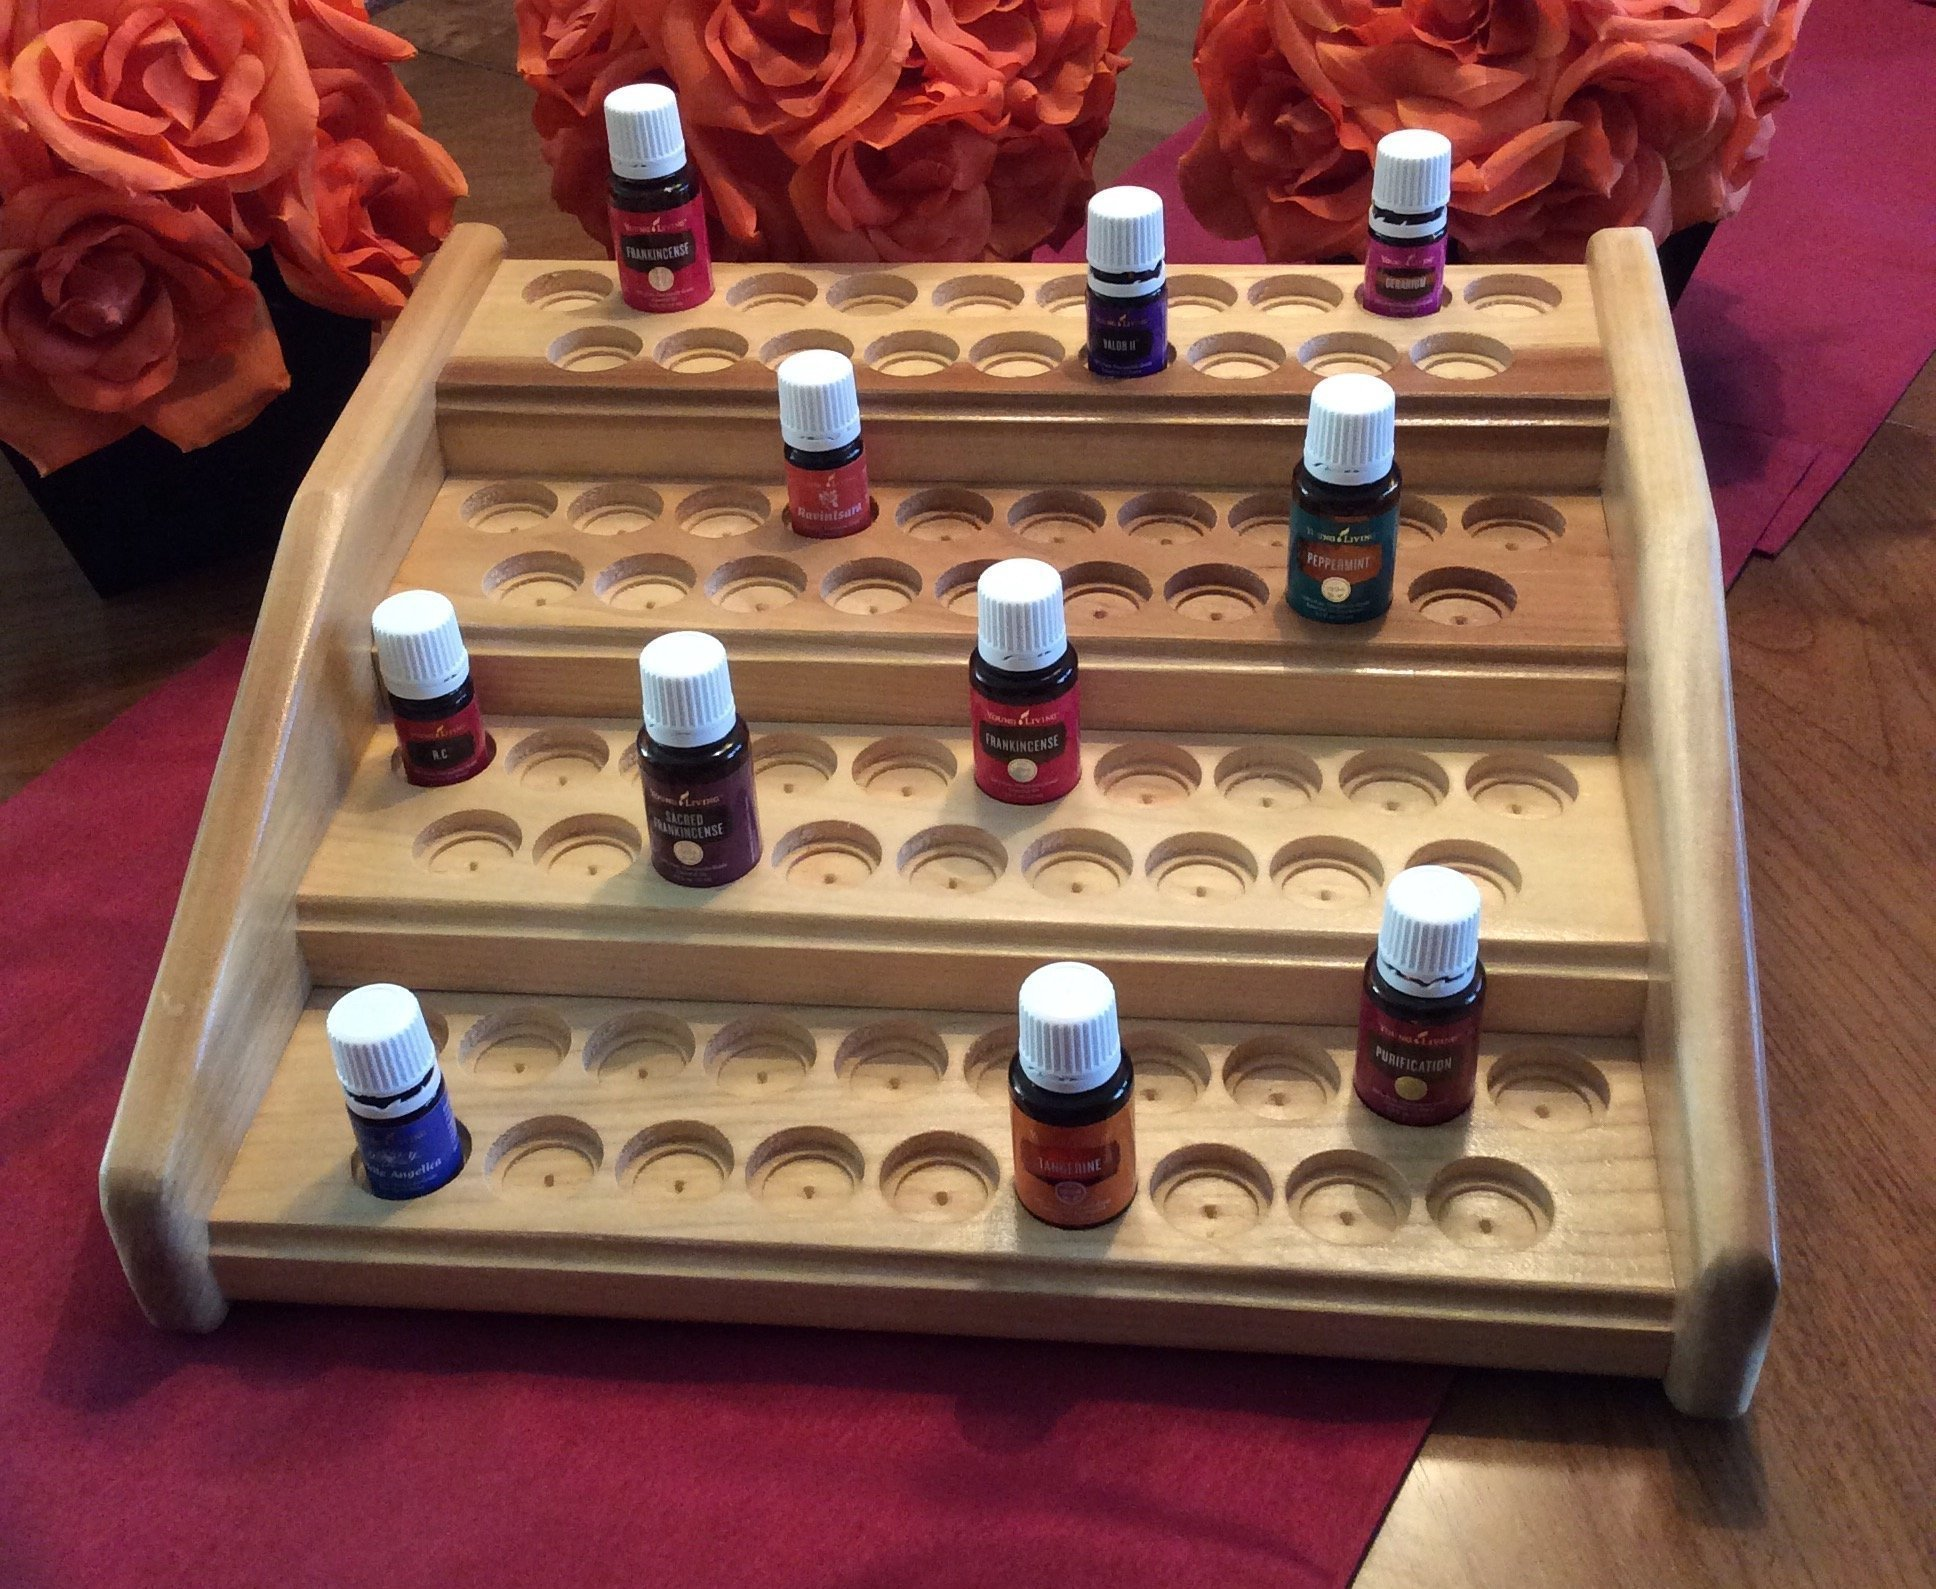 Essential oil rack / holder, EO storage stand for 76 bottles, oil organizer w/ dual bottle sizing, EO display for 5ml and 15ml bottles, 4 colors! Great fit for Young Living or doTerra oils! by John Benz Woodcraft